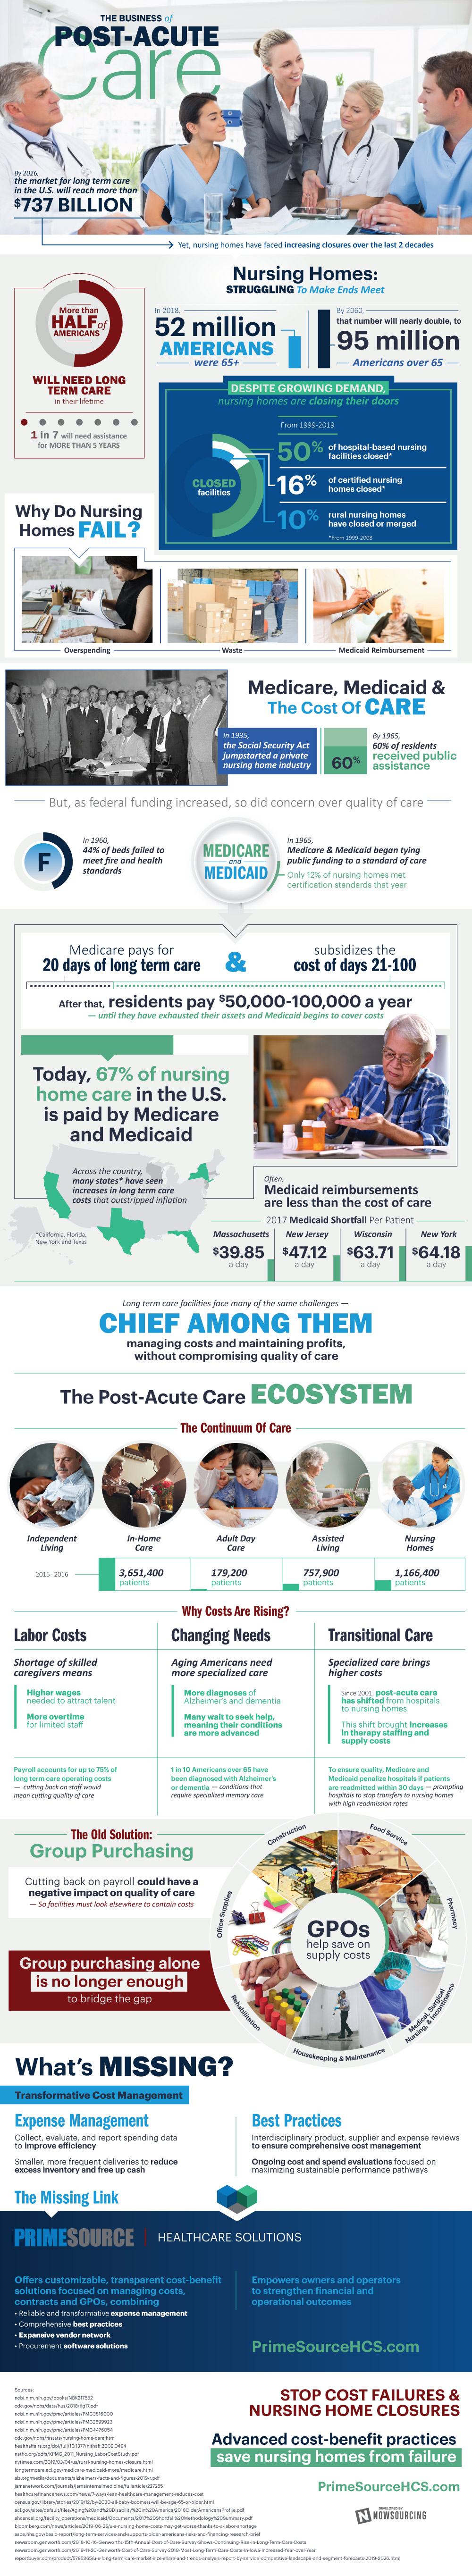 The Business of Post-Acute Care